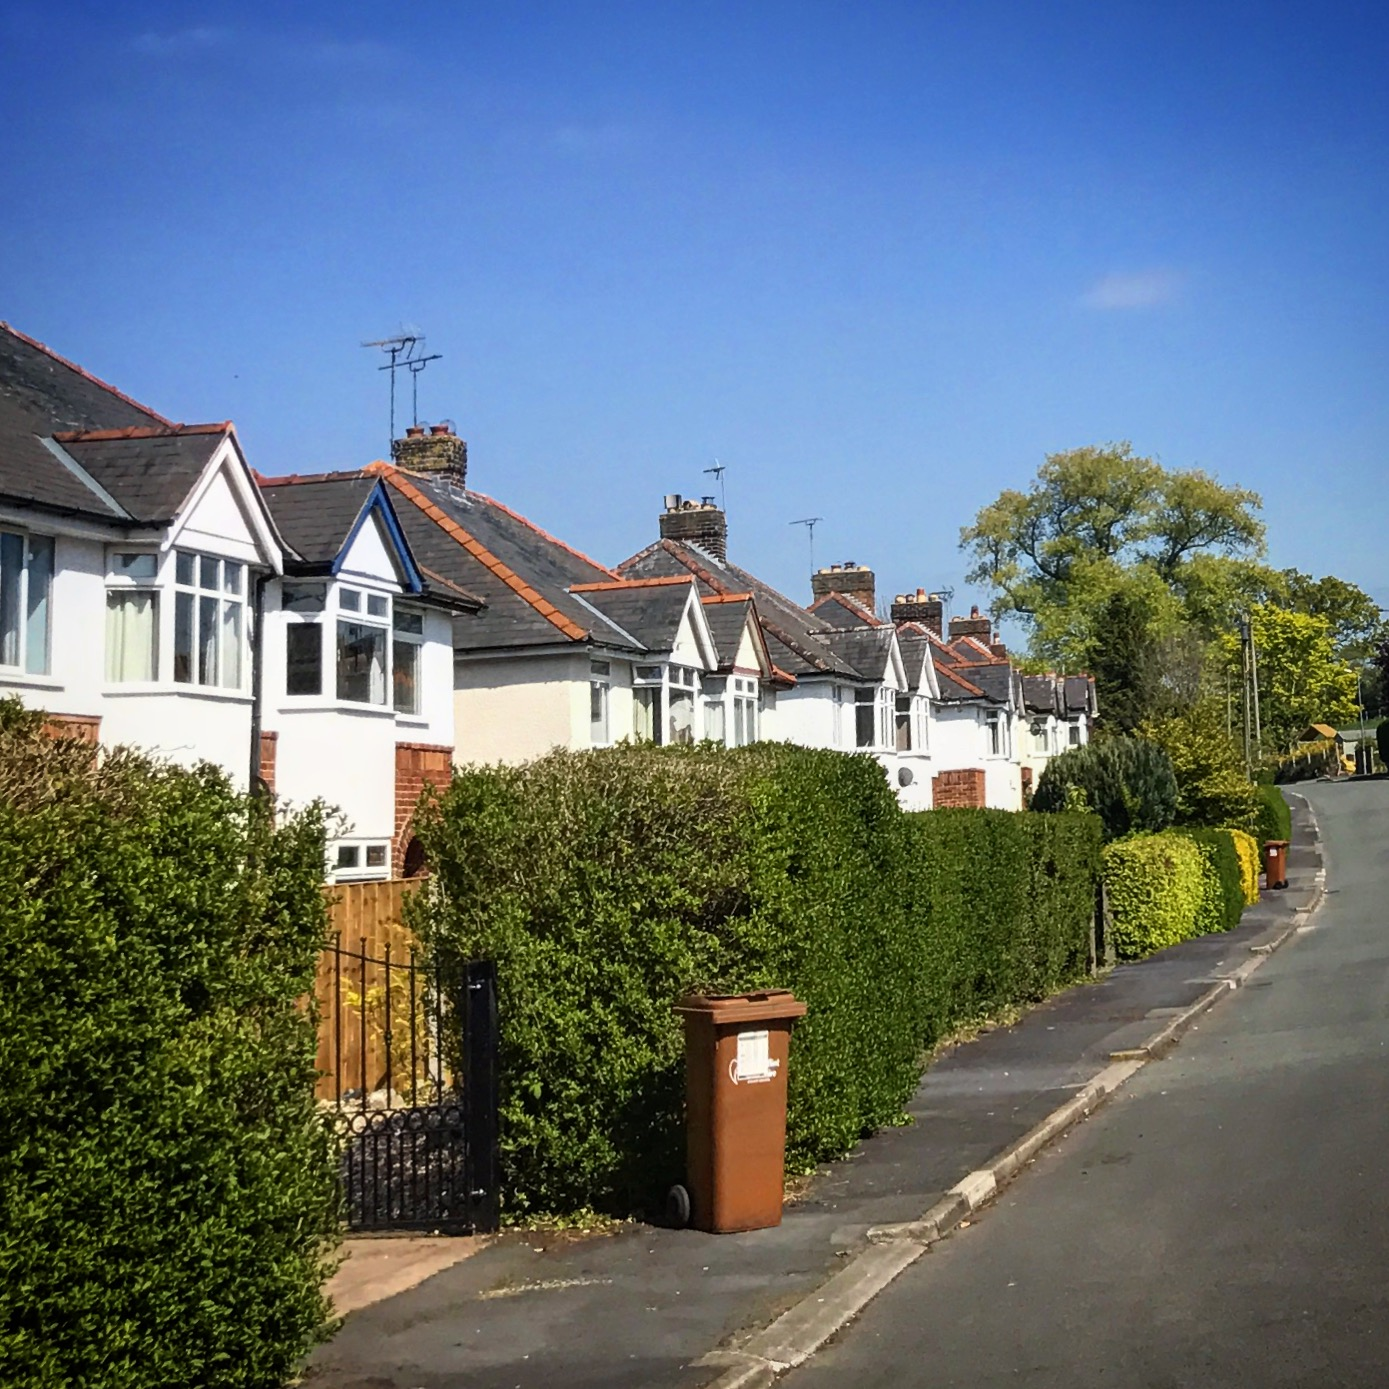 Housing - Rental, Affordable and retirement information